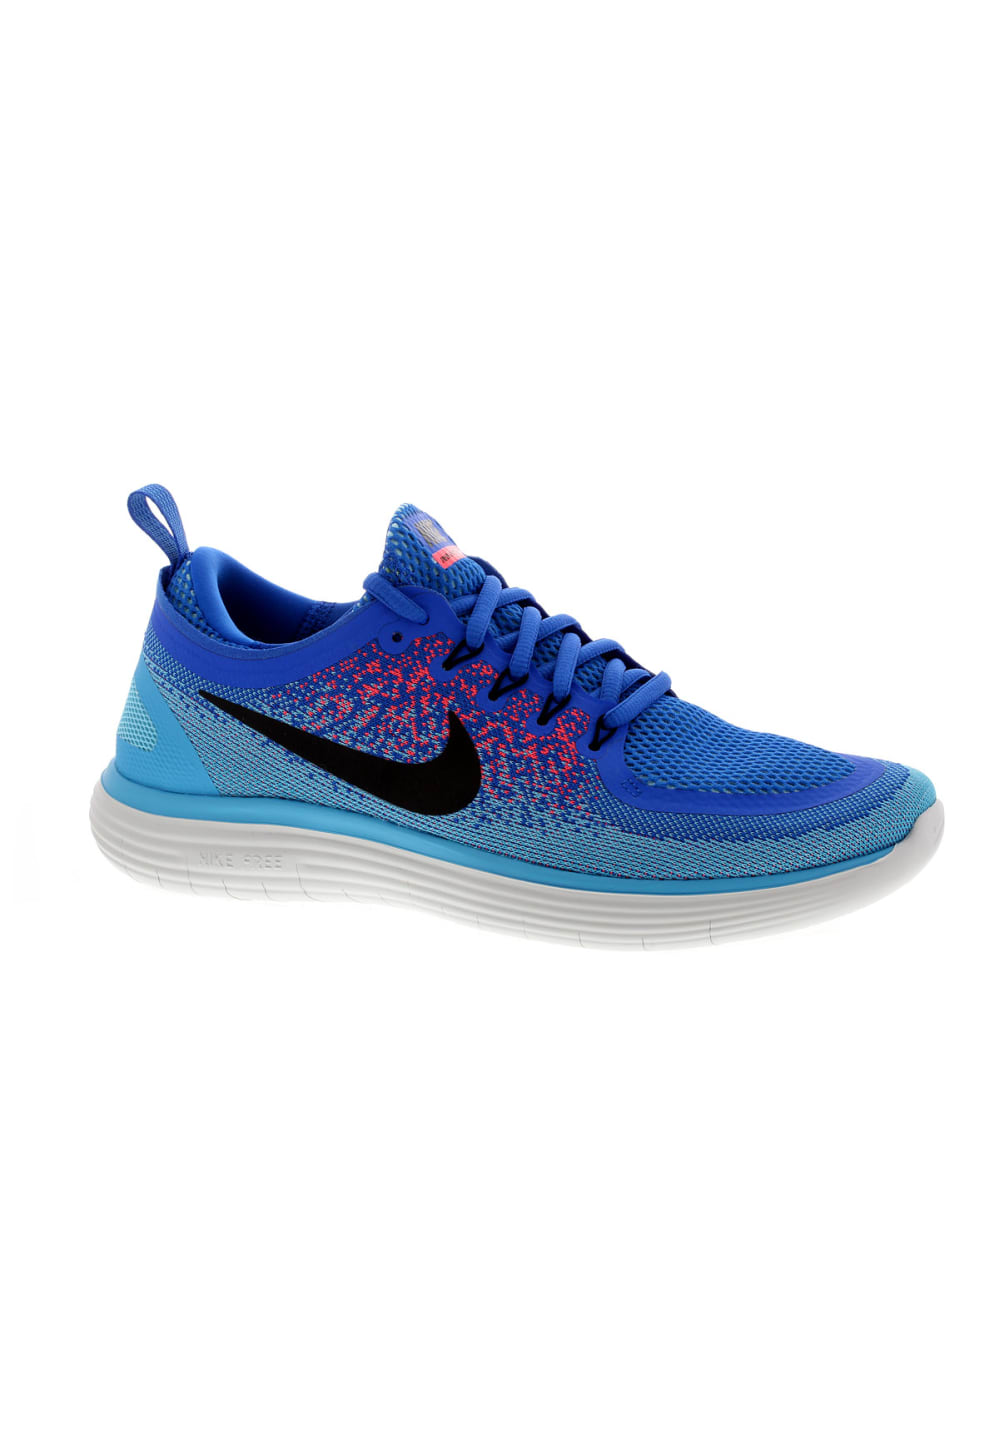 Nike Free RN Distance 2 - Running shoes for Men - Blue  63cadc7dd68fa